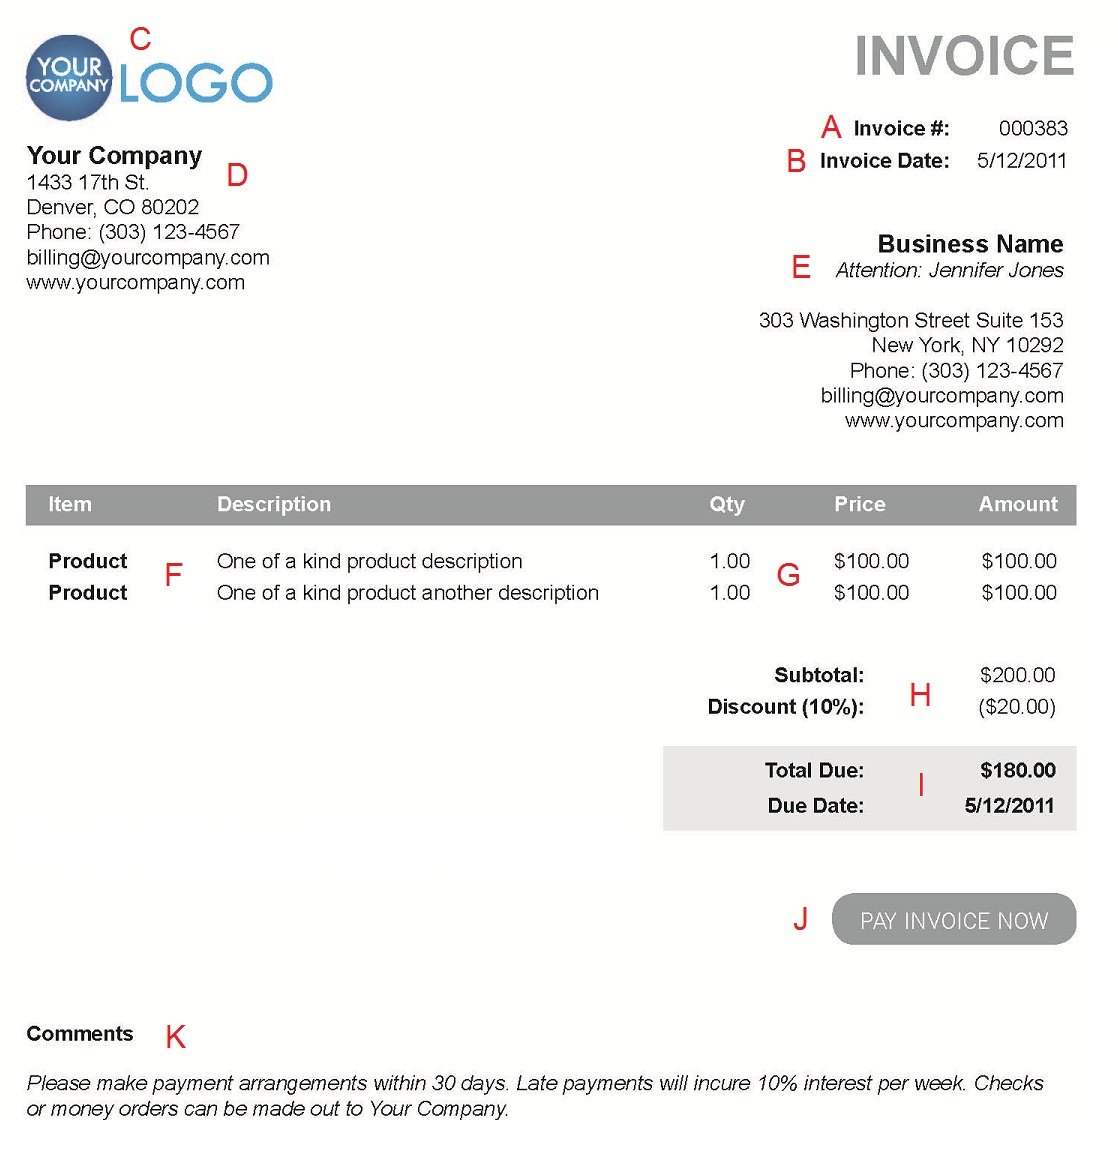 Usdgus  Wonderful The  Different Sections Of An Electronic Payment Invoice With Hot A  With Agreeable Excel Invoices Also Computer Repair Invoice In Addition Proforma Invoice Sample And Stripe Invoices As Well As Gmc Acadia Invoice Price Additionally Invoice Templates For Mac From Paysimplecom With Usdgus  Hot The  Different Sections Of An Electronic Payment Invoice With Agreeable A  And Wonderful Excel Invoices Also Computer Repair Invoice In Addition Proforma Invoice Sample From Paysimplecom